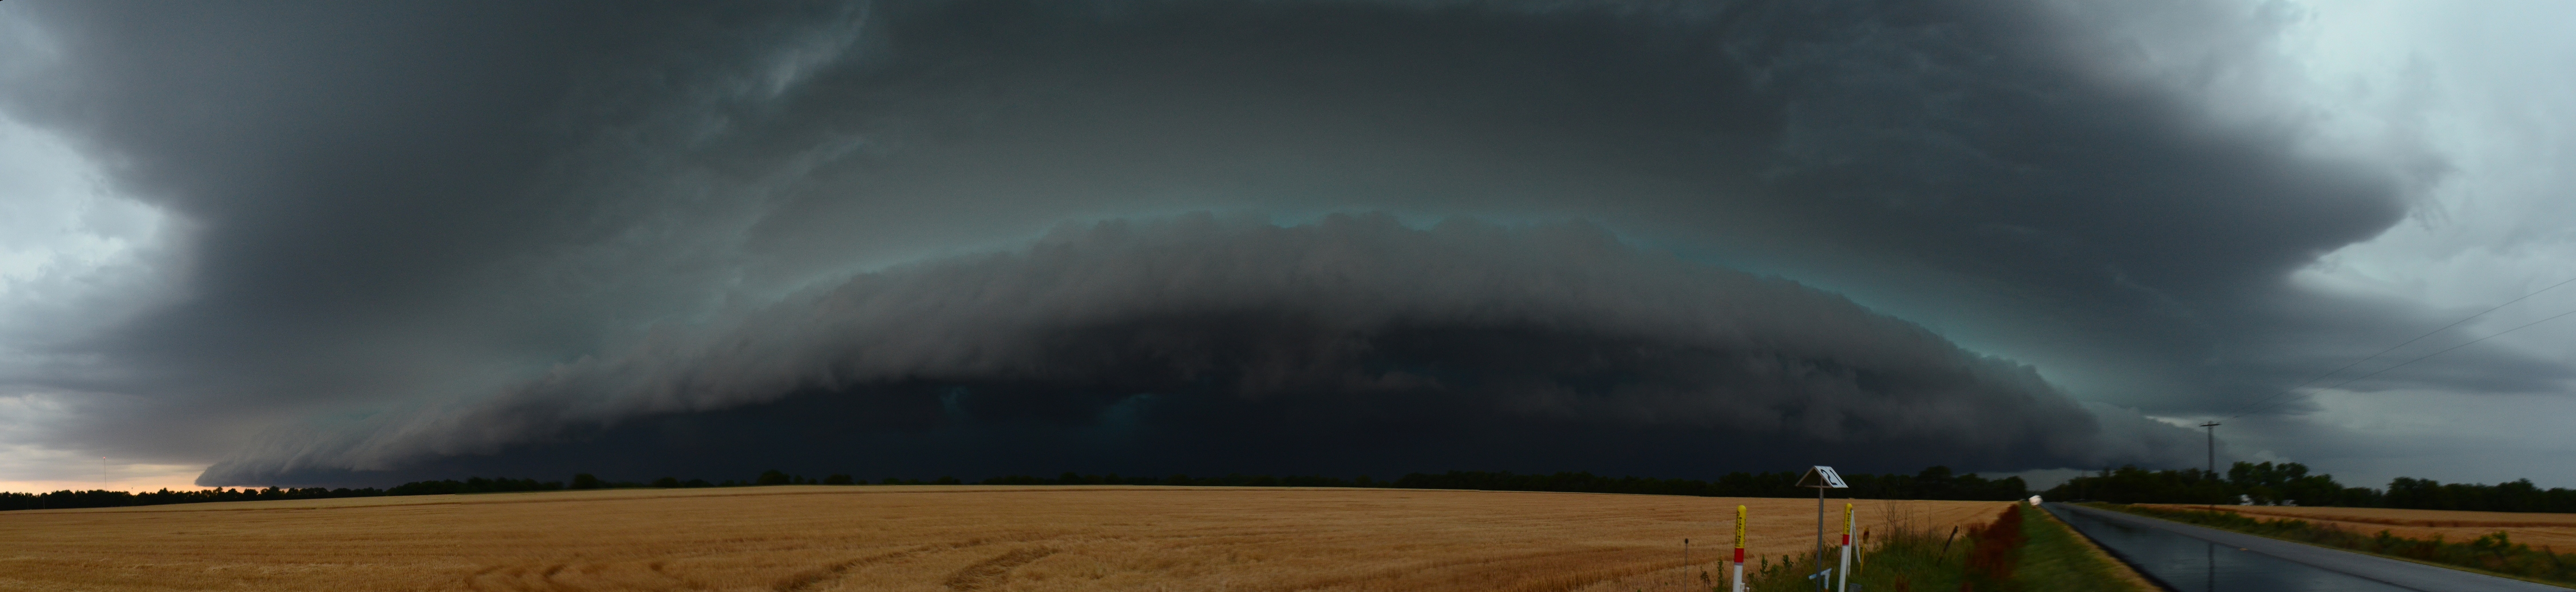 Huge panoramic view of an approaching storm.